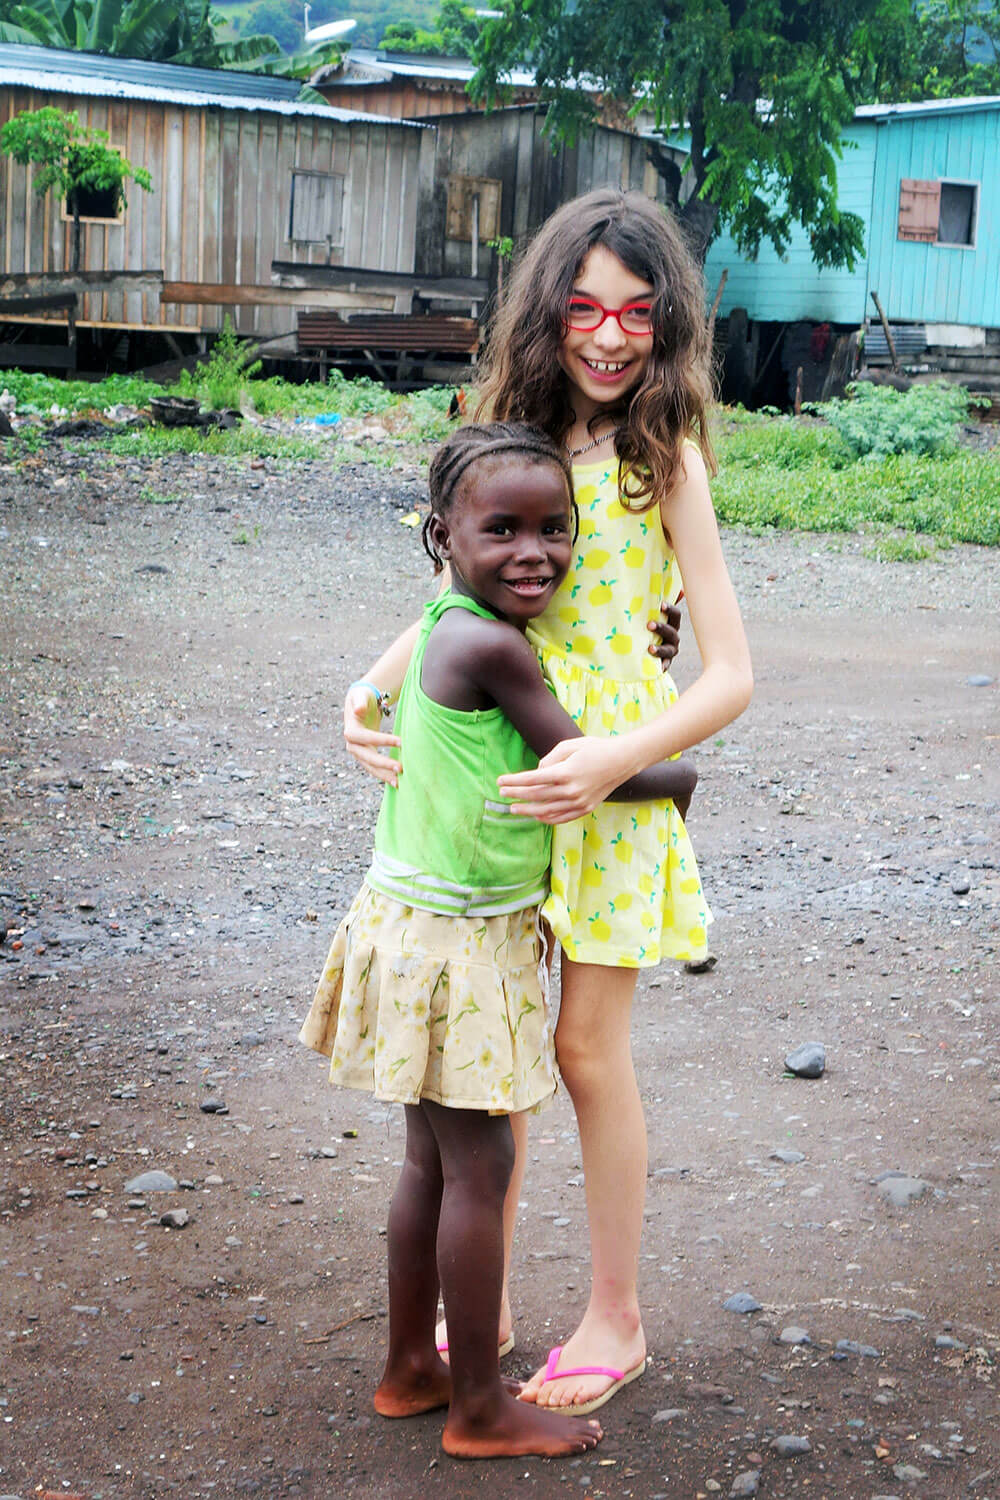 White girl embraces an African child.